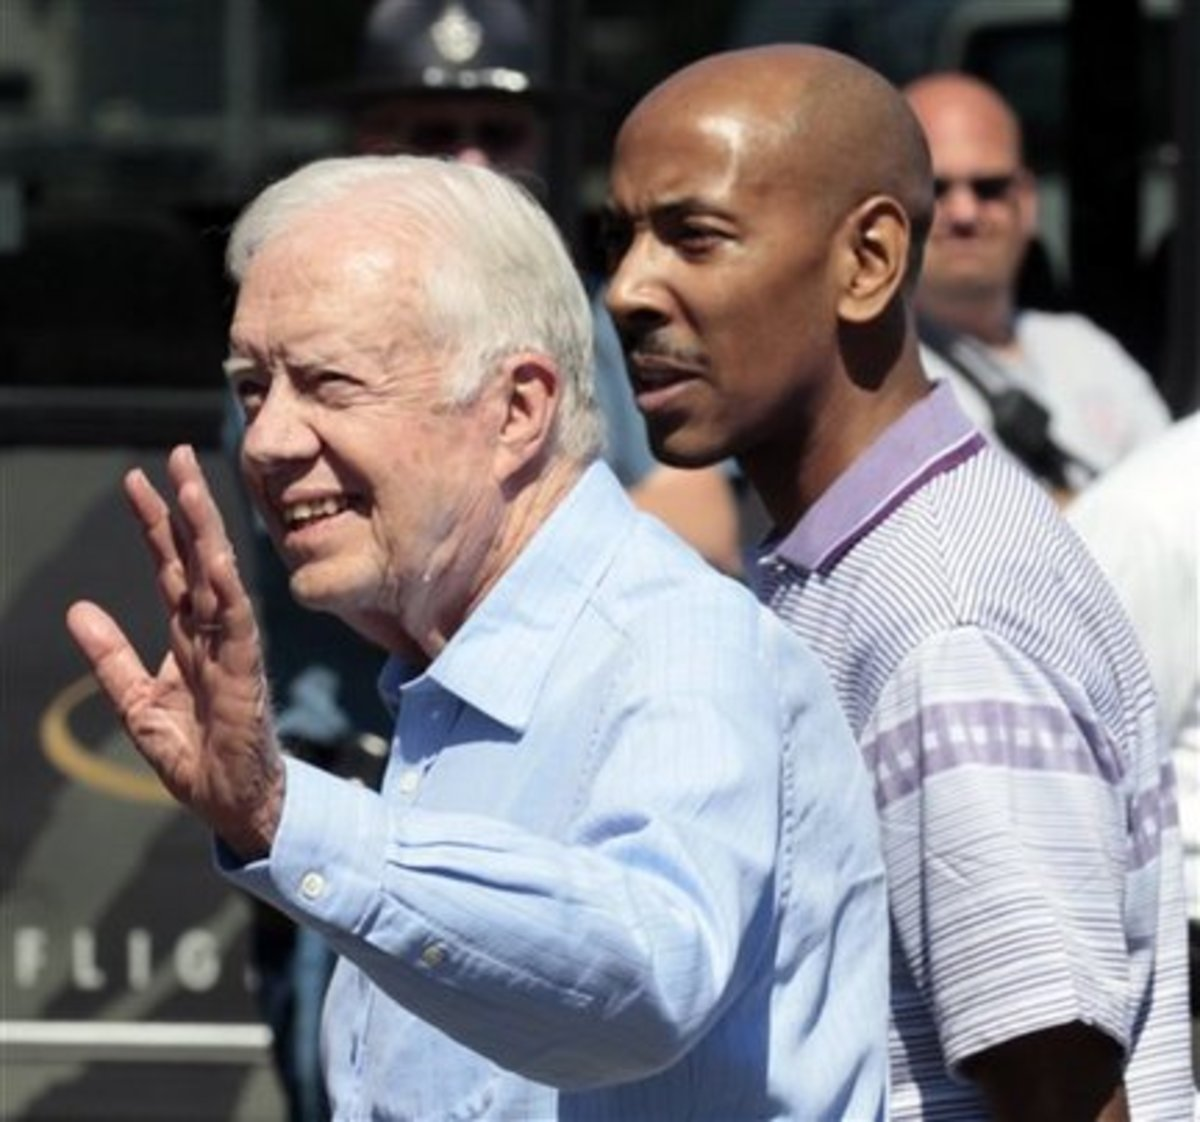 Jimmy Carter with Aijalon Gomes, back in America after being released from North Korea